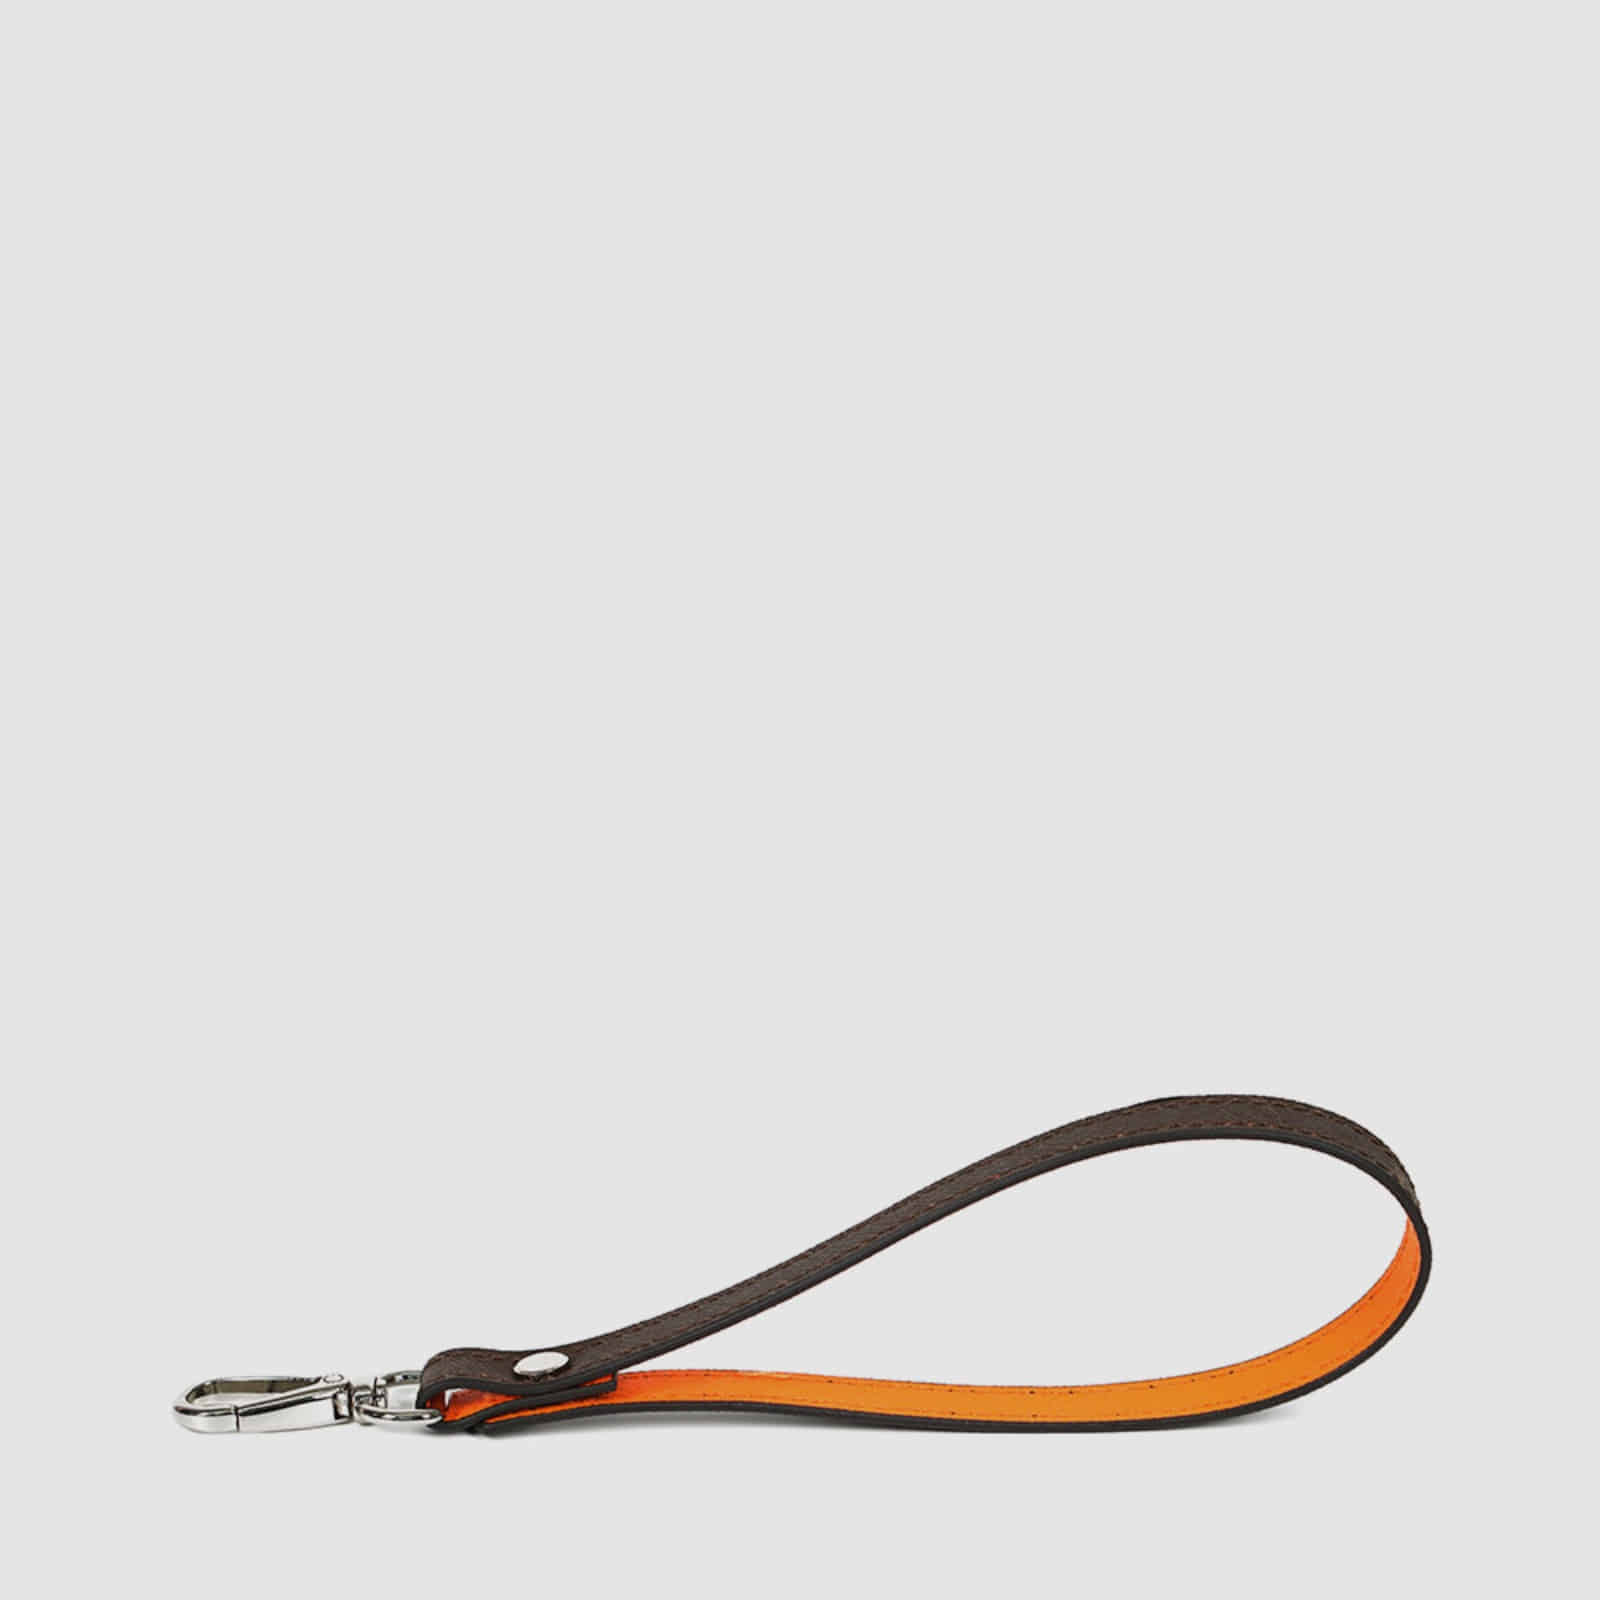 LO-9510 DBR/OR (DEEP BROWN/ORANGE)